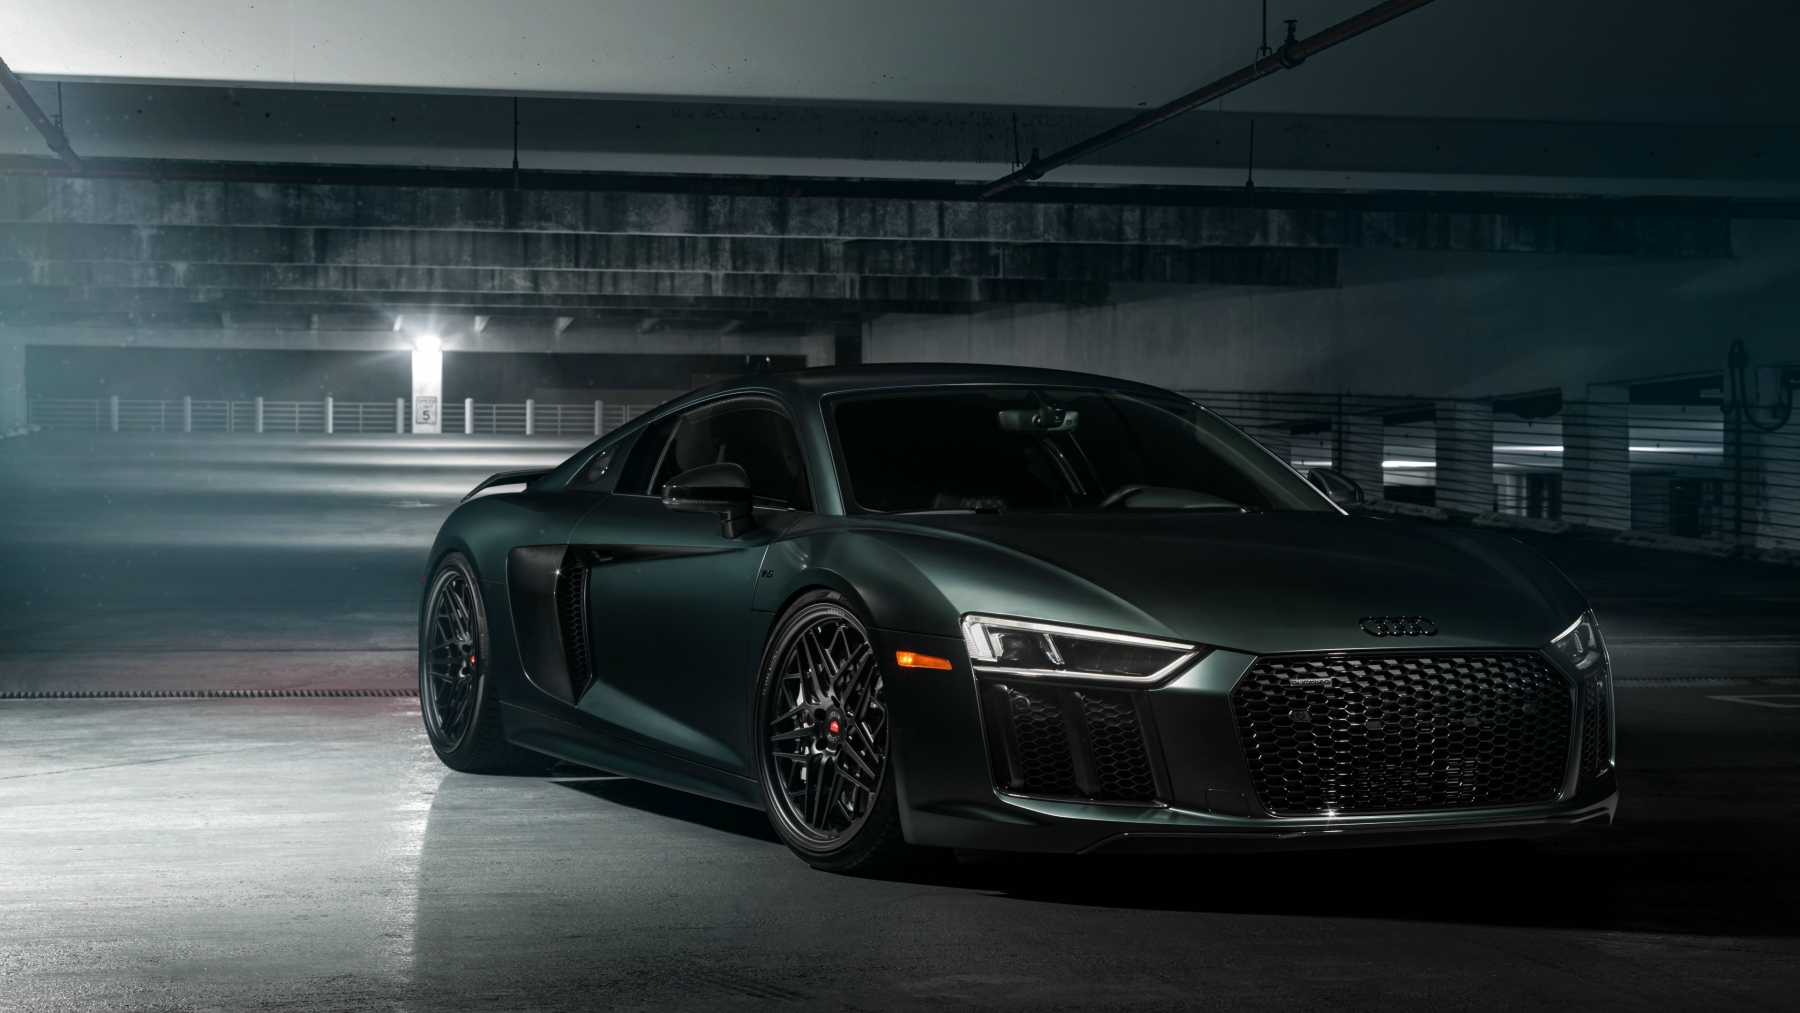 Audi R8 2019 Hd Wallpapers Background Images Photos